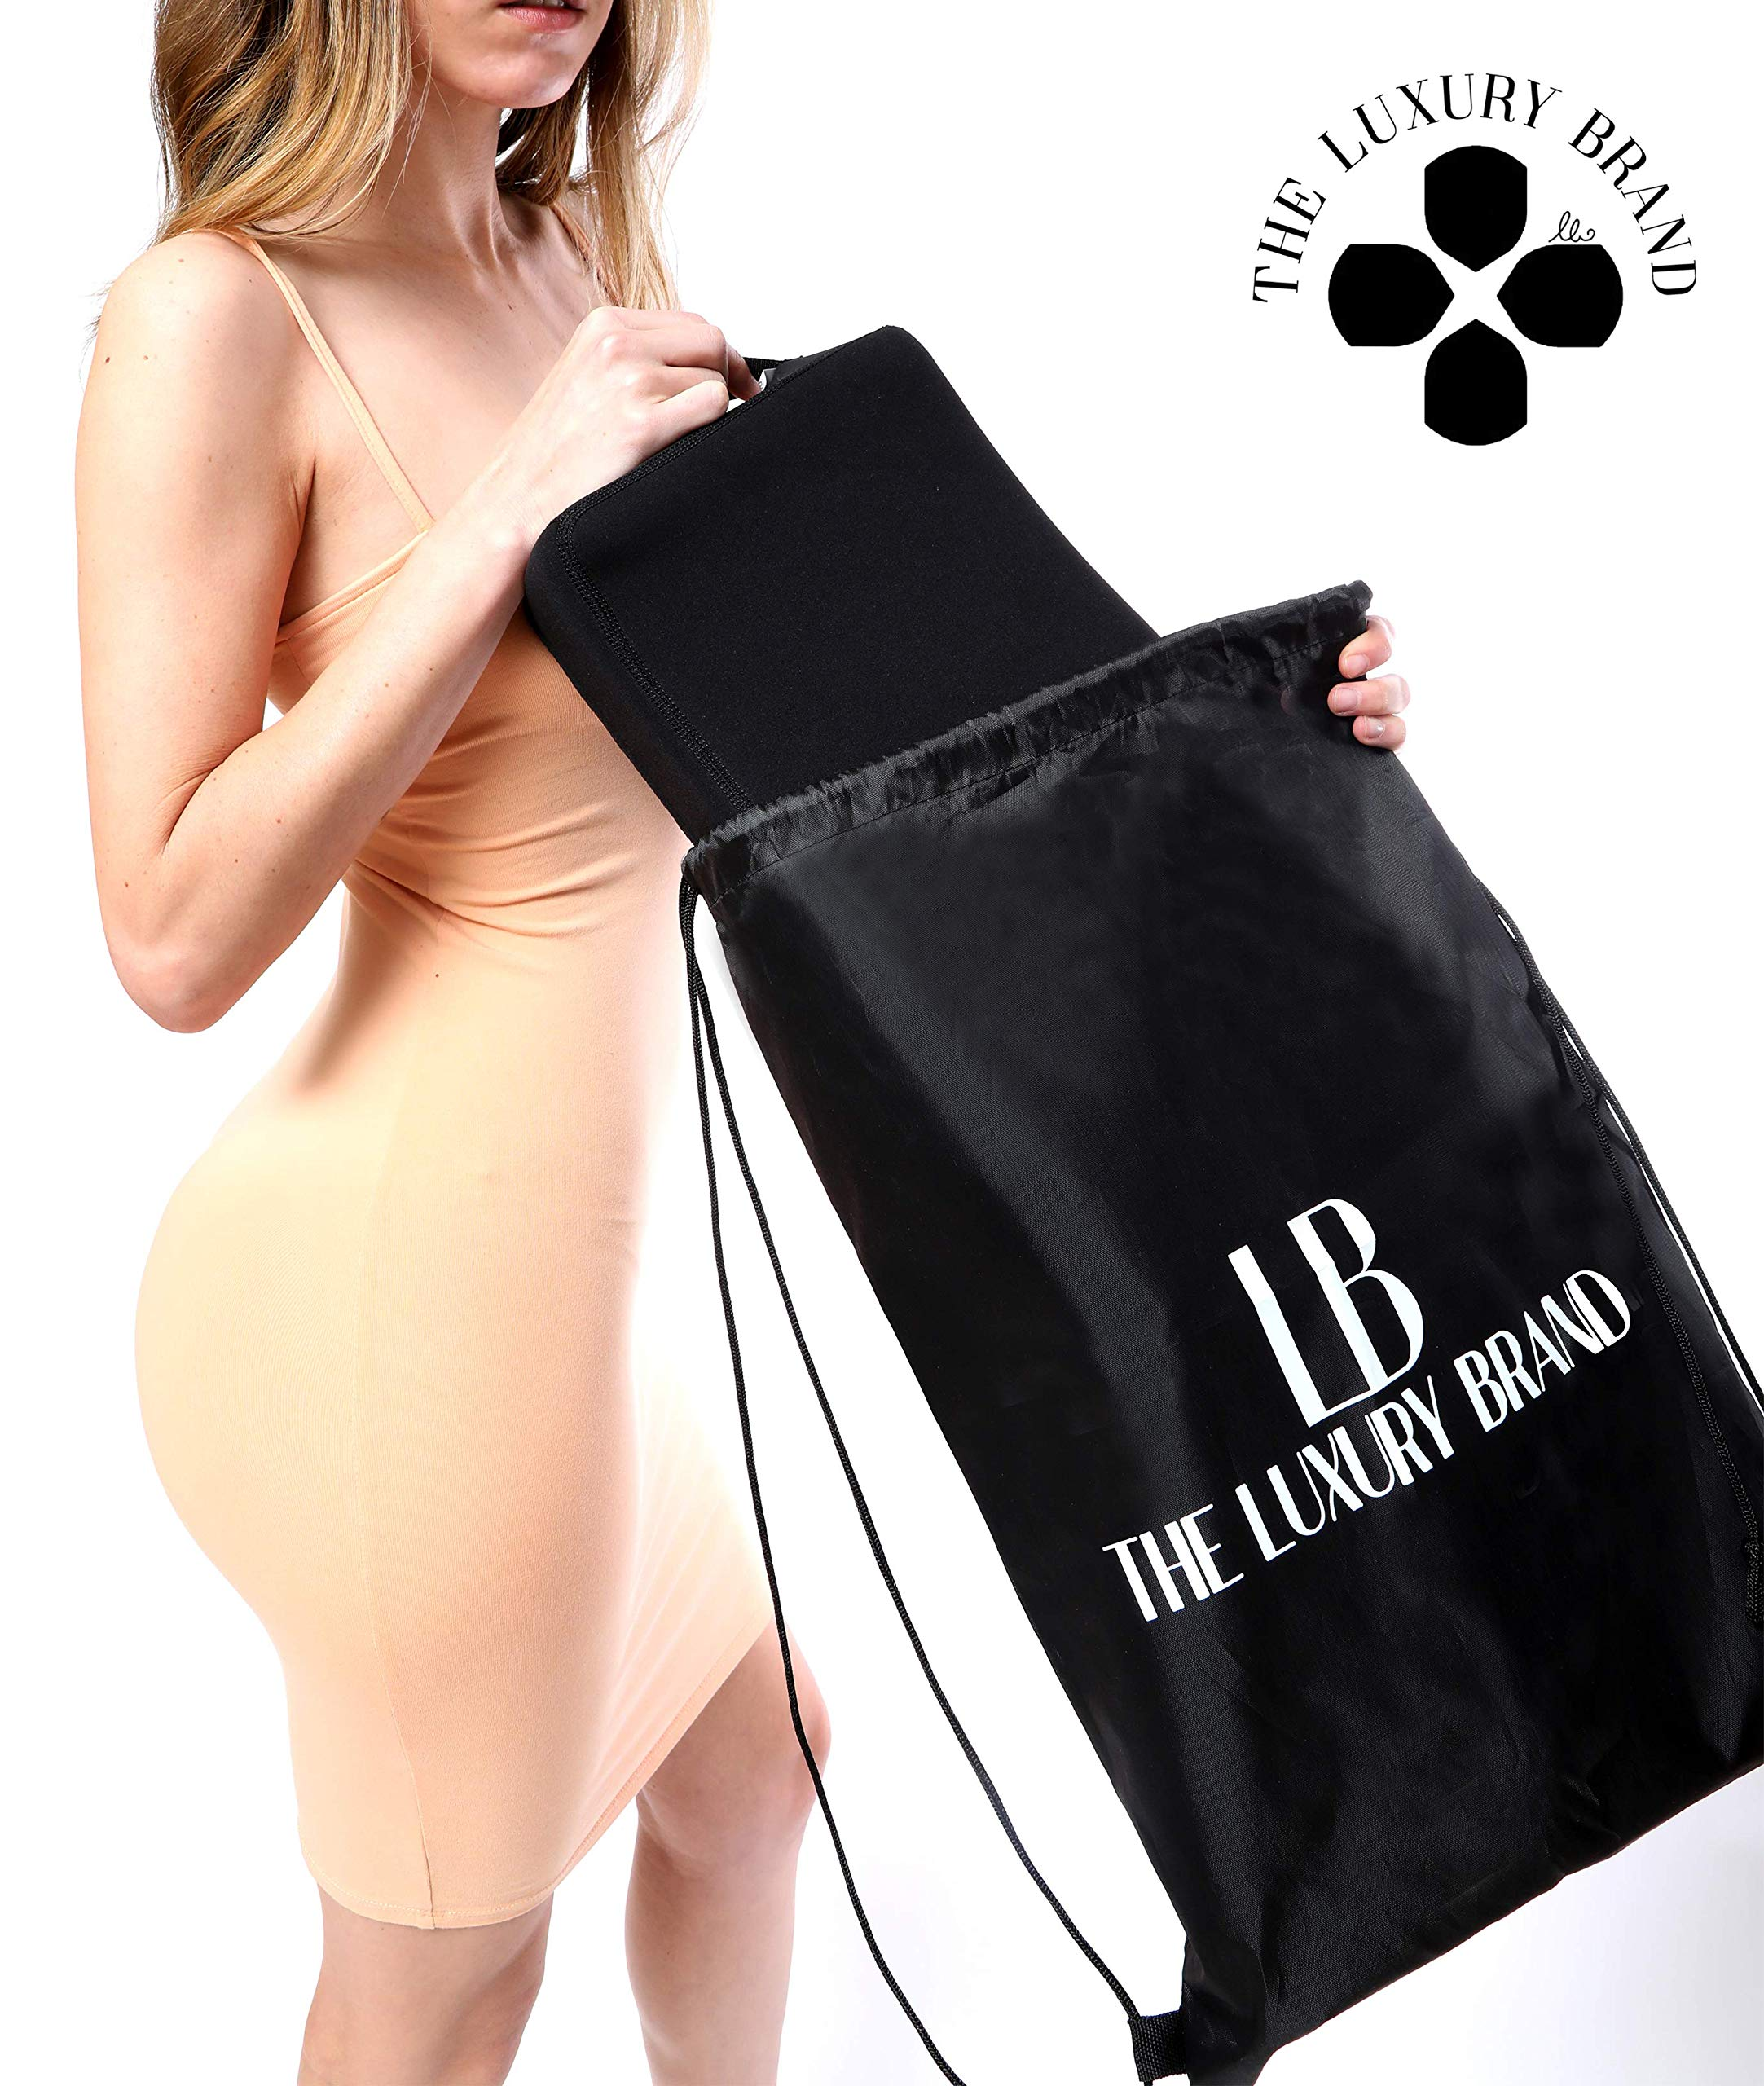 Luxury BBL Booty Pillow For Post Recovery Brazilian Butt Lift: Premium & Comfortable Post Recovery Pillow - After Surgery Pillows for Buttocks + Cushion Cover / Drawstring Bag